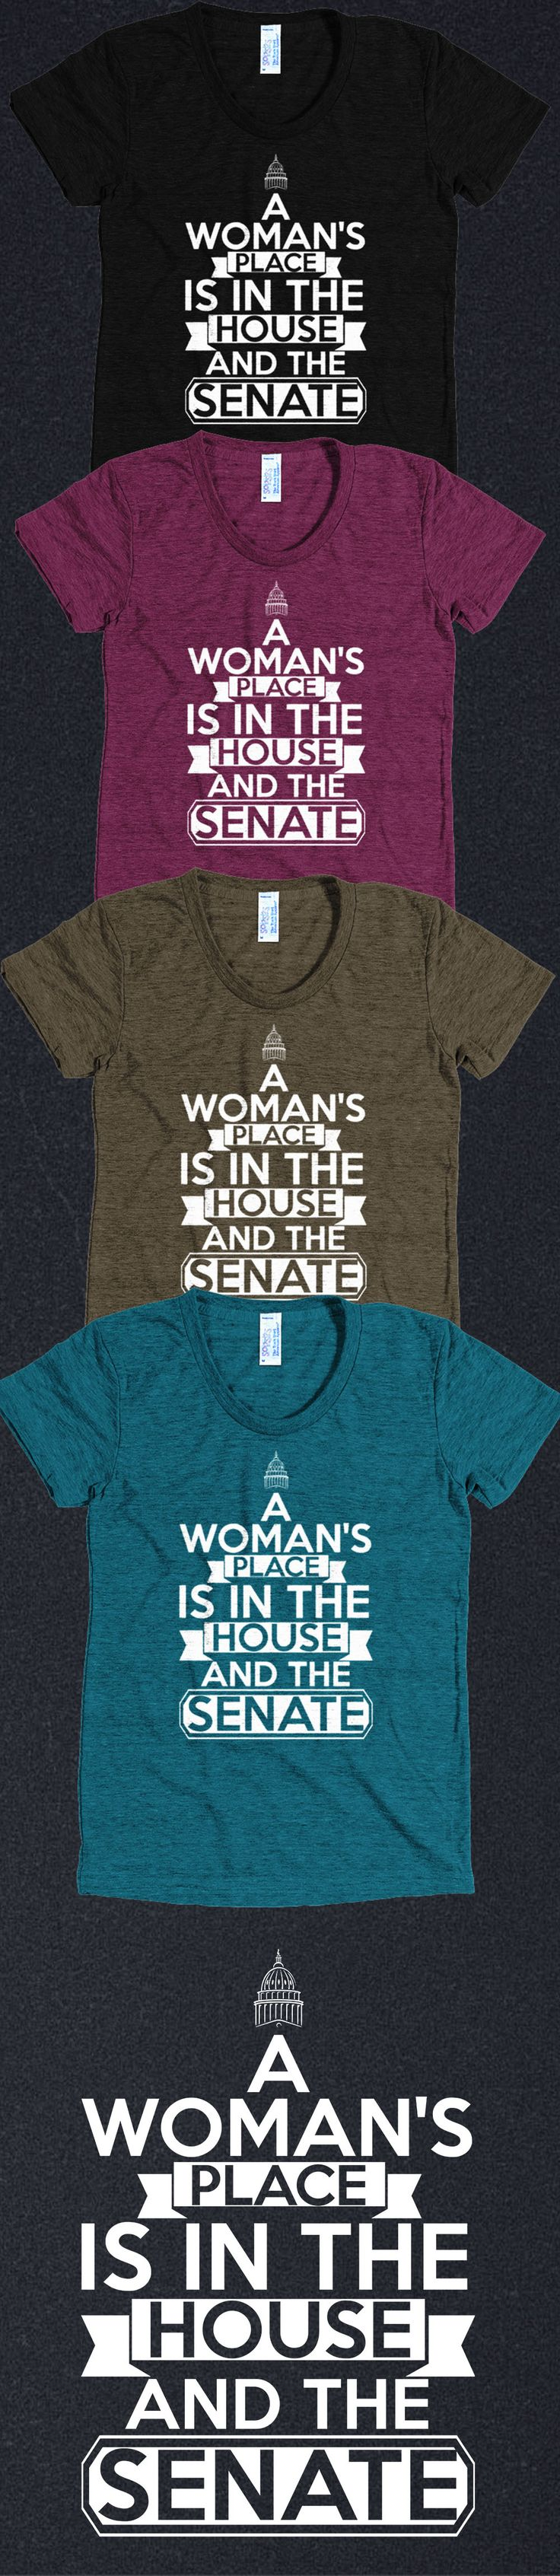 af960d00637 A WOman s Place is in the House and Senate! Support Hiliary Clinton with  this awesome